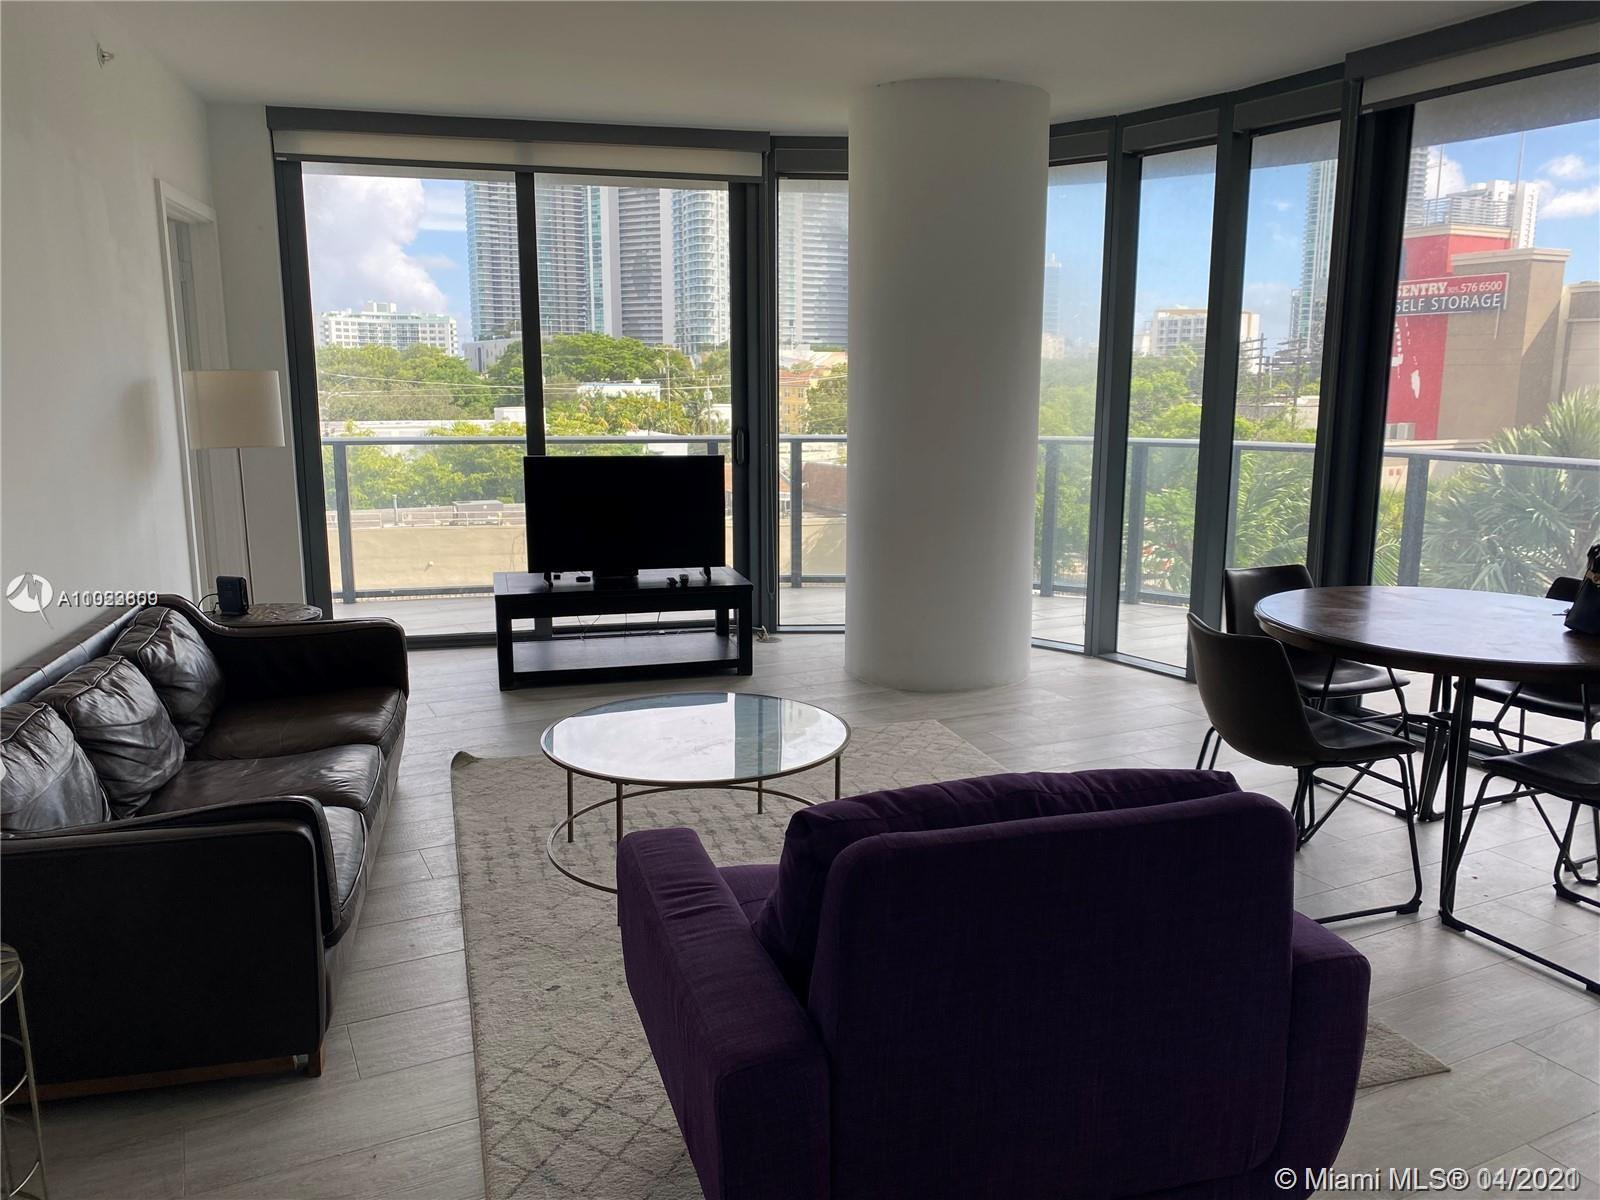 CORNER UNIT WITH WRAP-AROUND BALCONY. BREATHTAKING VIEWS TO THE OCEAN, SOUTH BEACH AND DOWNTOWN SKYL